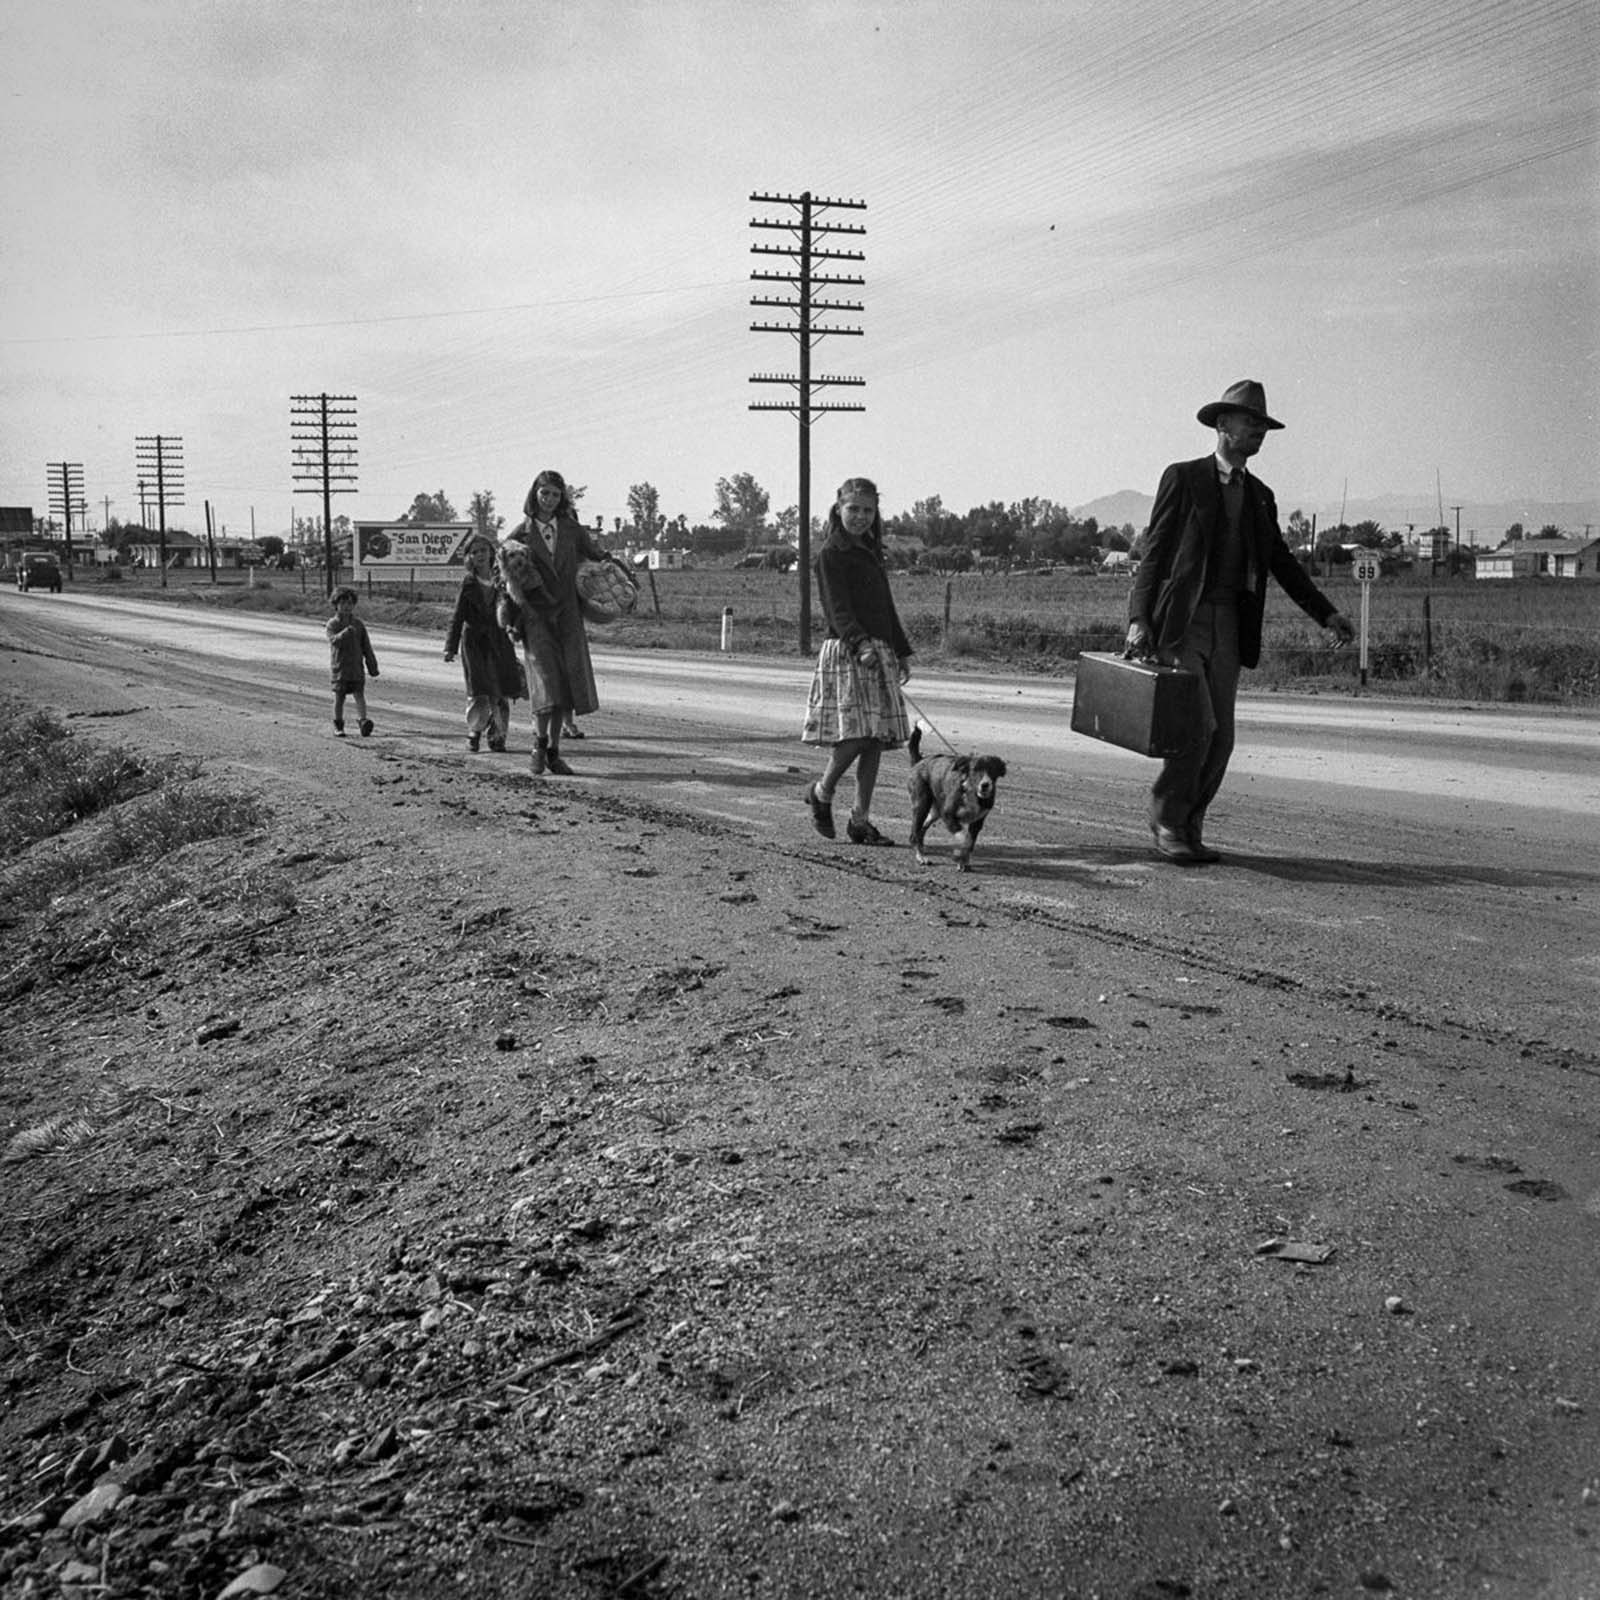 A homeless cotton-picking family of seven walk on Highway 99 from Phoenix, Arizona to San Diego in search of relief. 1939.